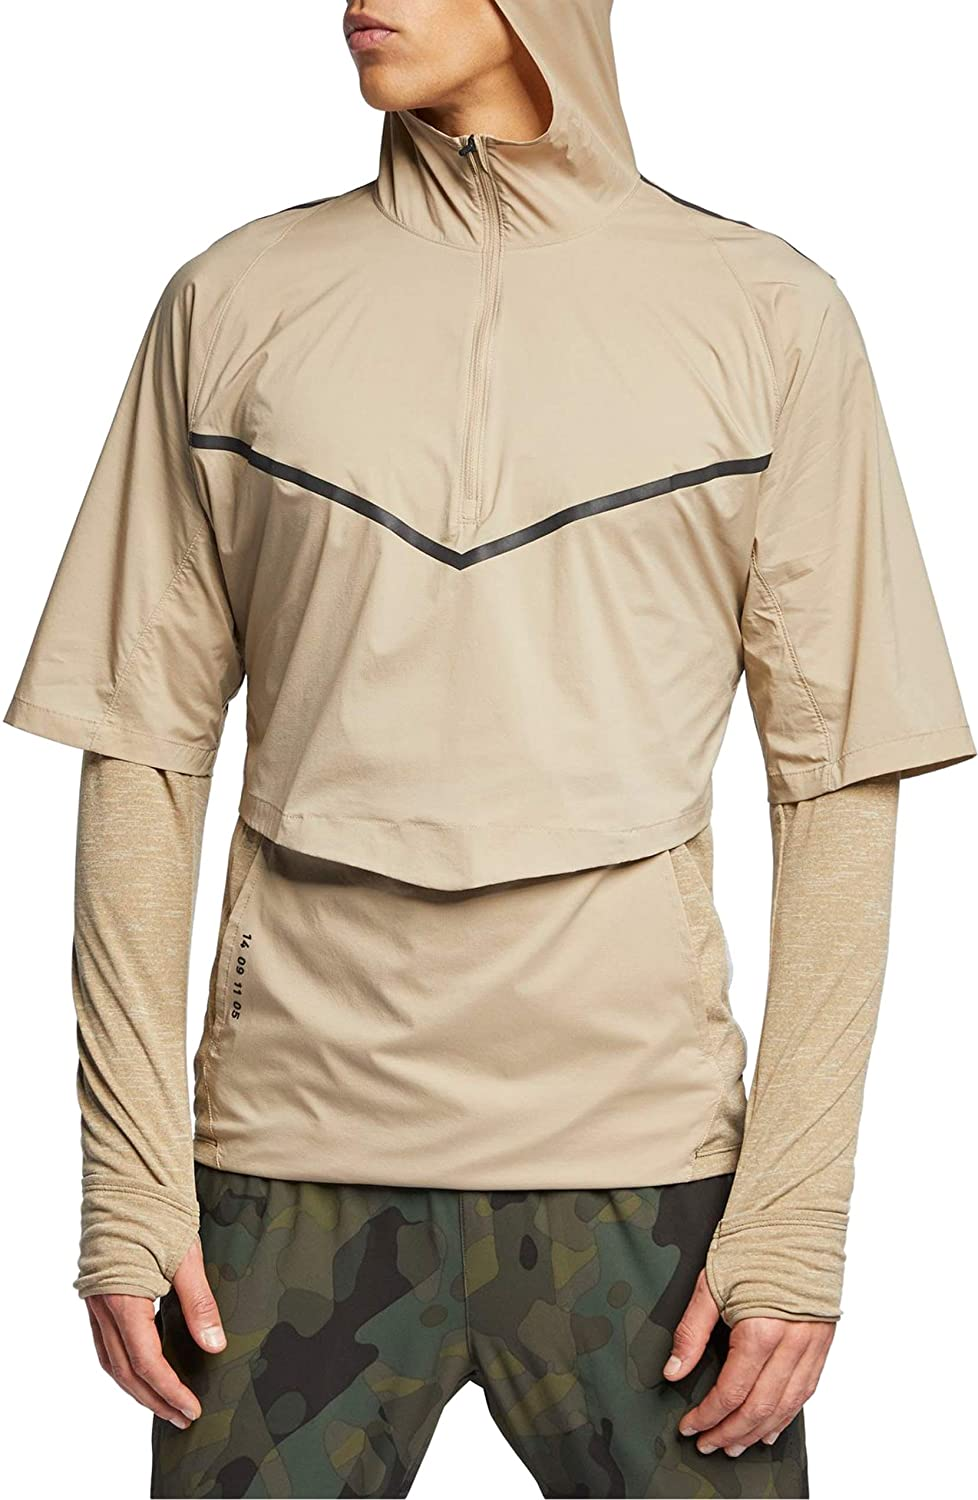 [ナイキ] Running メンズ ジャケットブルゾン Nike Therma Sphere Tech Pack Running Tech Nike Top [並行輸入品] B07P2W48BP large_r, 【gracias】-グラシアス:51e568e7 --- harrow-unison.org.uk